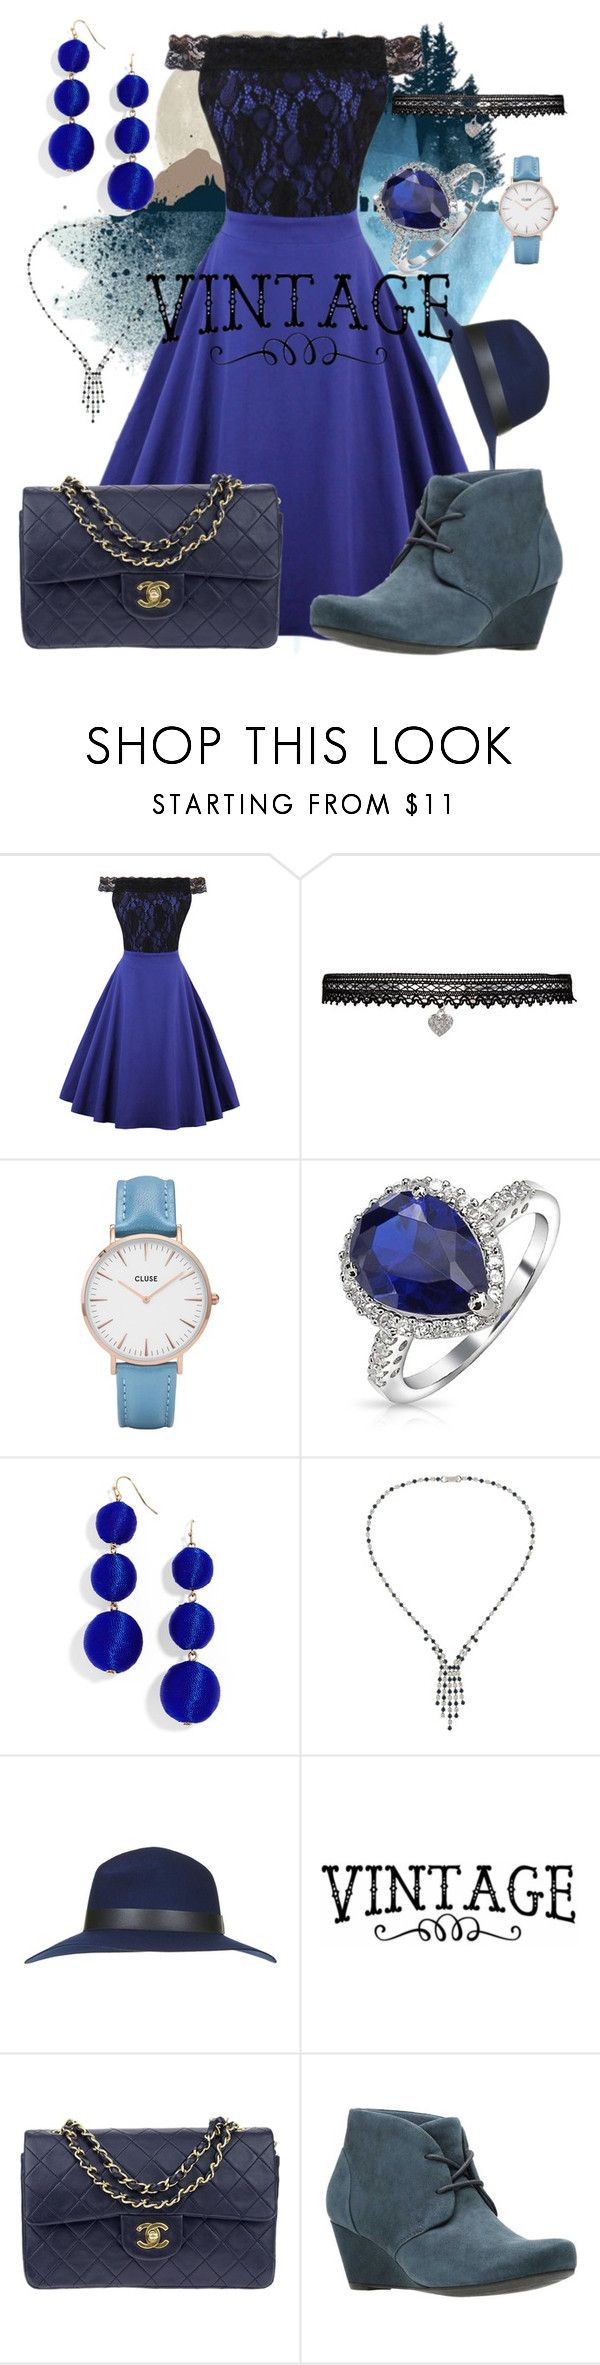 """vintage blue"" by mmgrimshaw ❤ liked on Polyvore featuring WithChic, Betsey Johnson, CLUSE, Bling Jewelry, BaubleBar, Susan Caplan Vintage, Topshop, Chanel, Clarks and vintage"